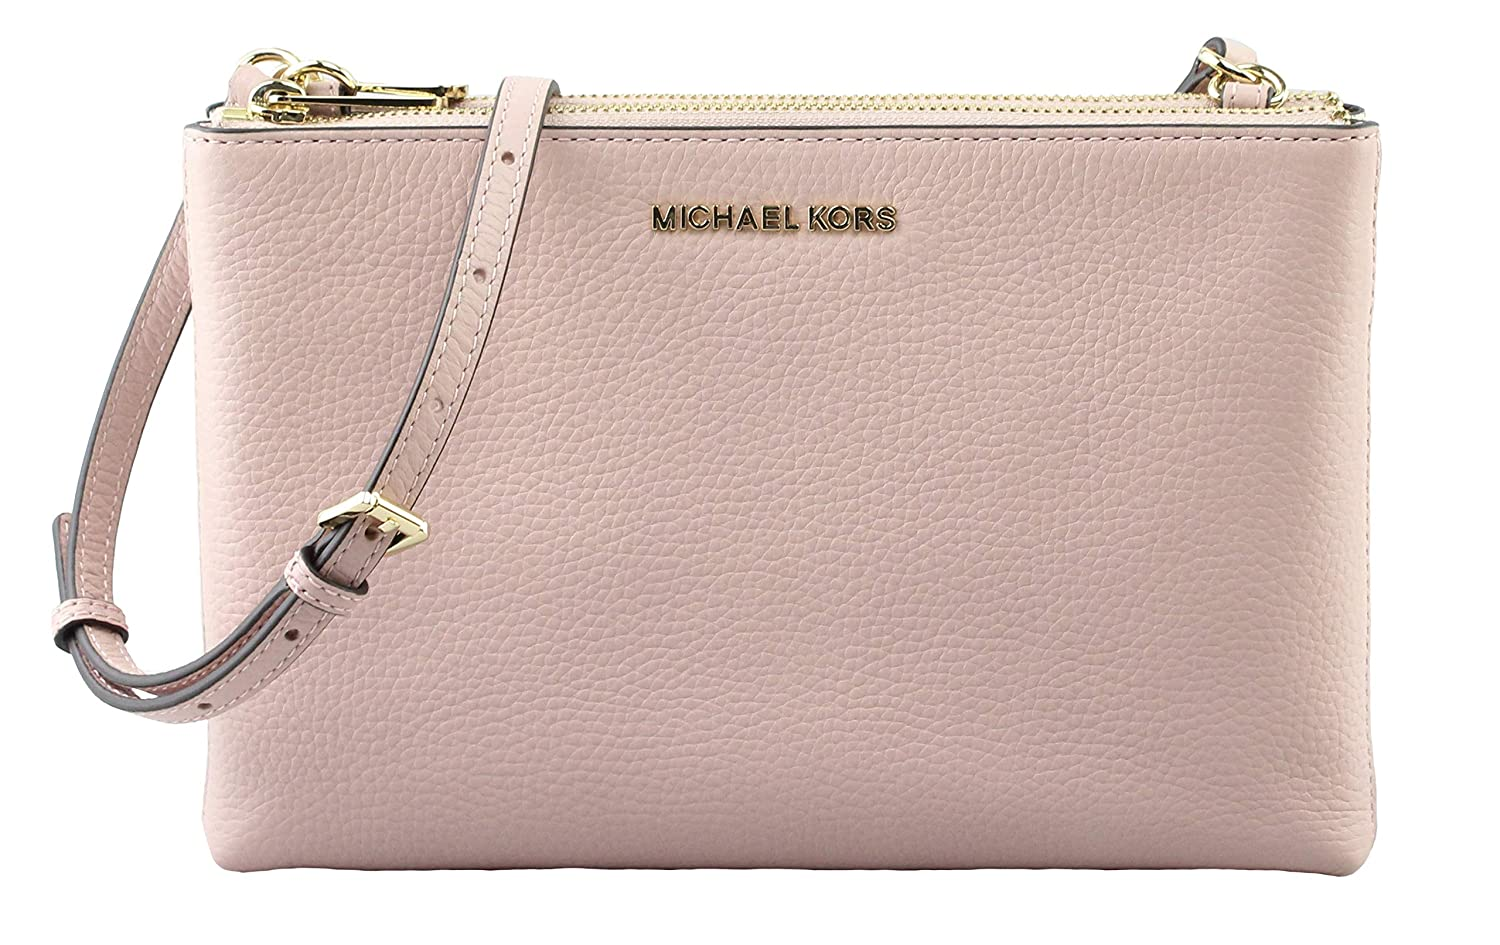 ff92411ca546 Michael Kors Jet Set Travel Double Zip Gusset Signature Crossbody Vanilla  Pastel Pink PVC  Handbags  Amazon.com